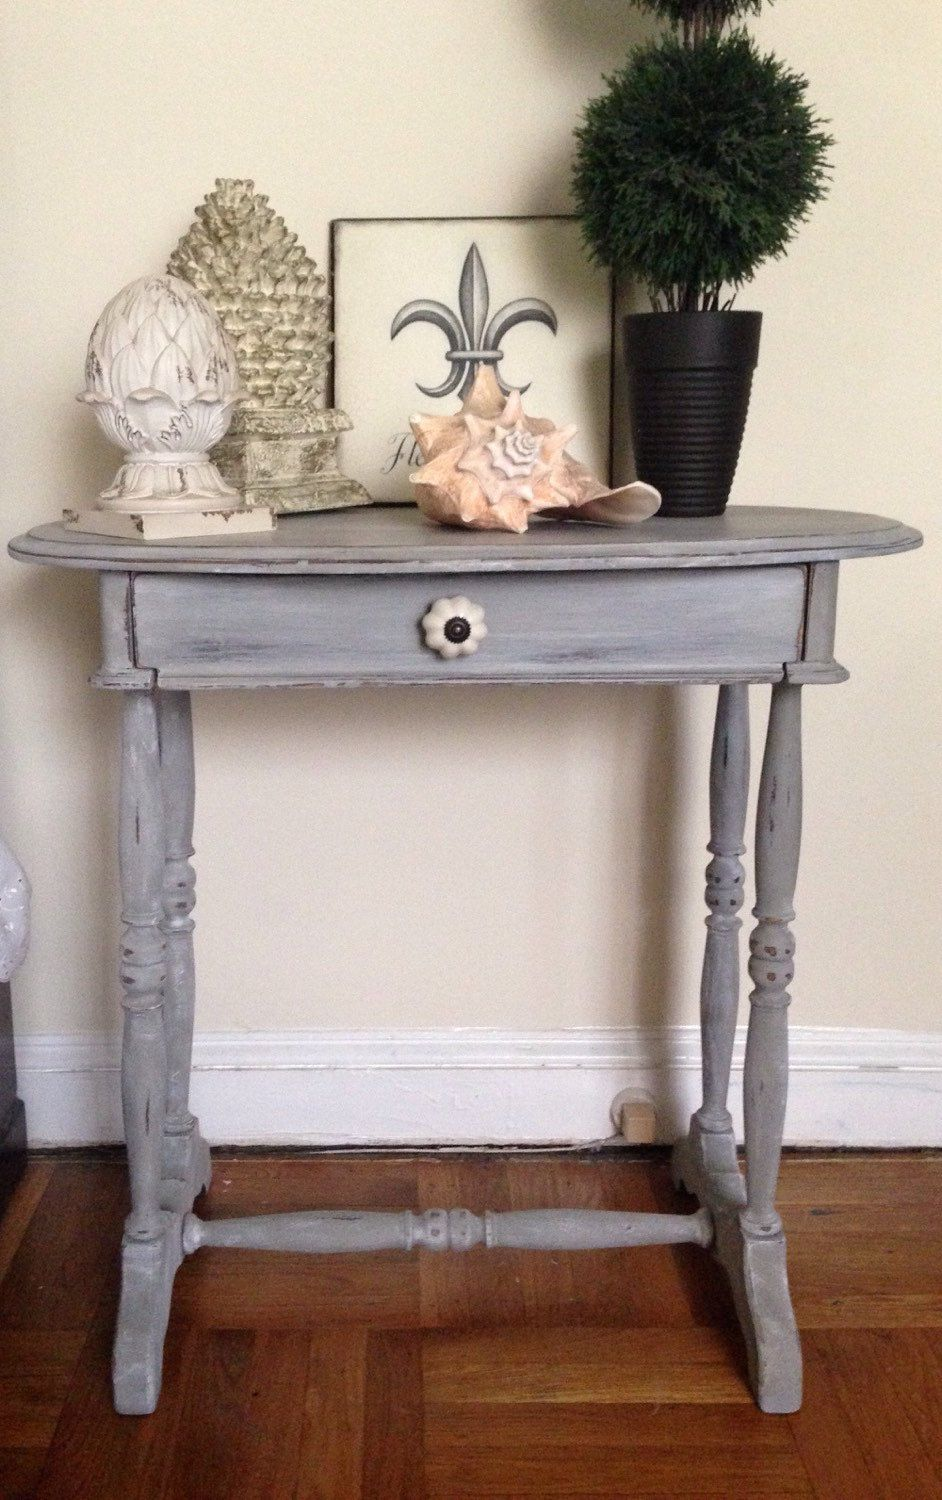 Vintage Entry Table Hand Painted In Weathered Grey Technique